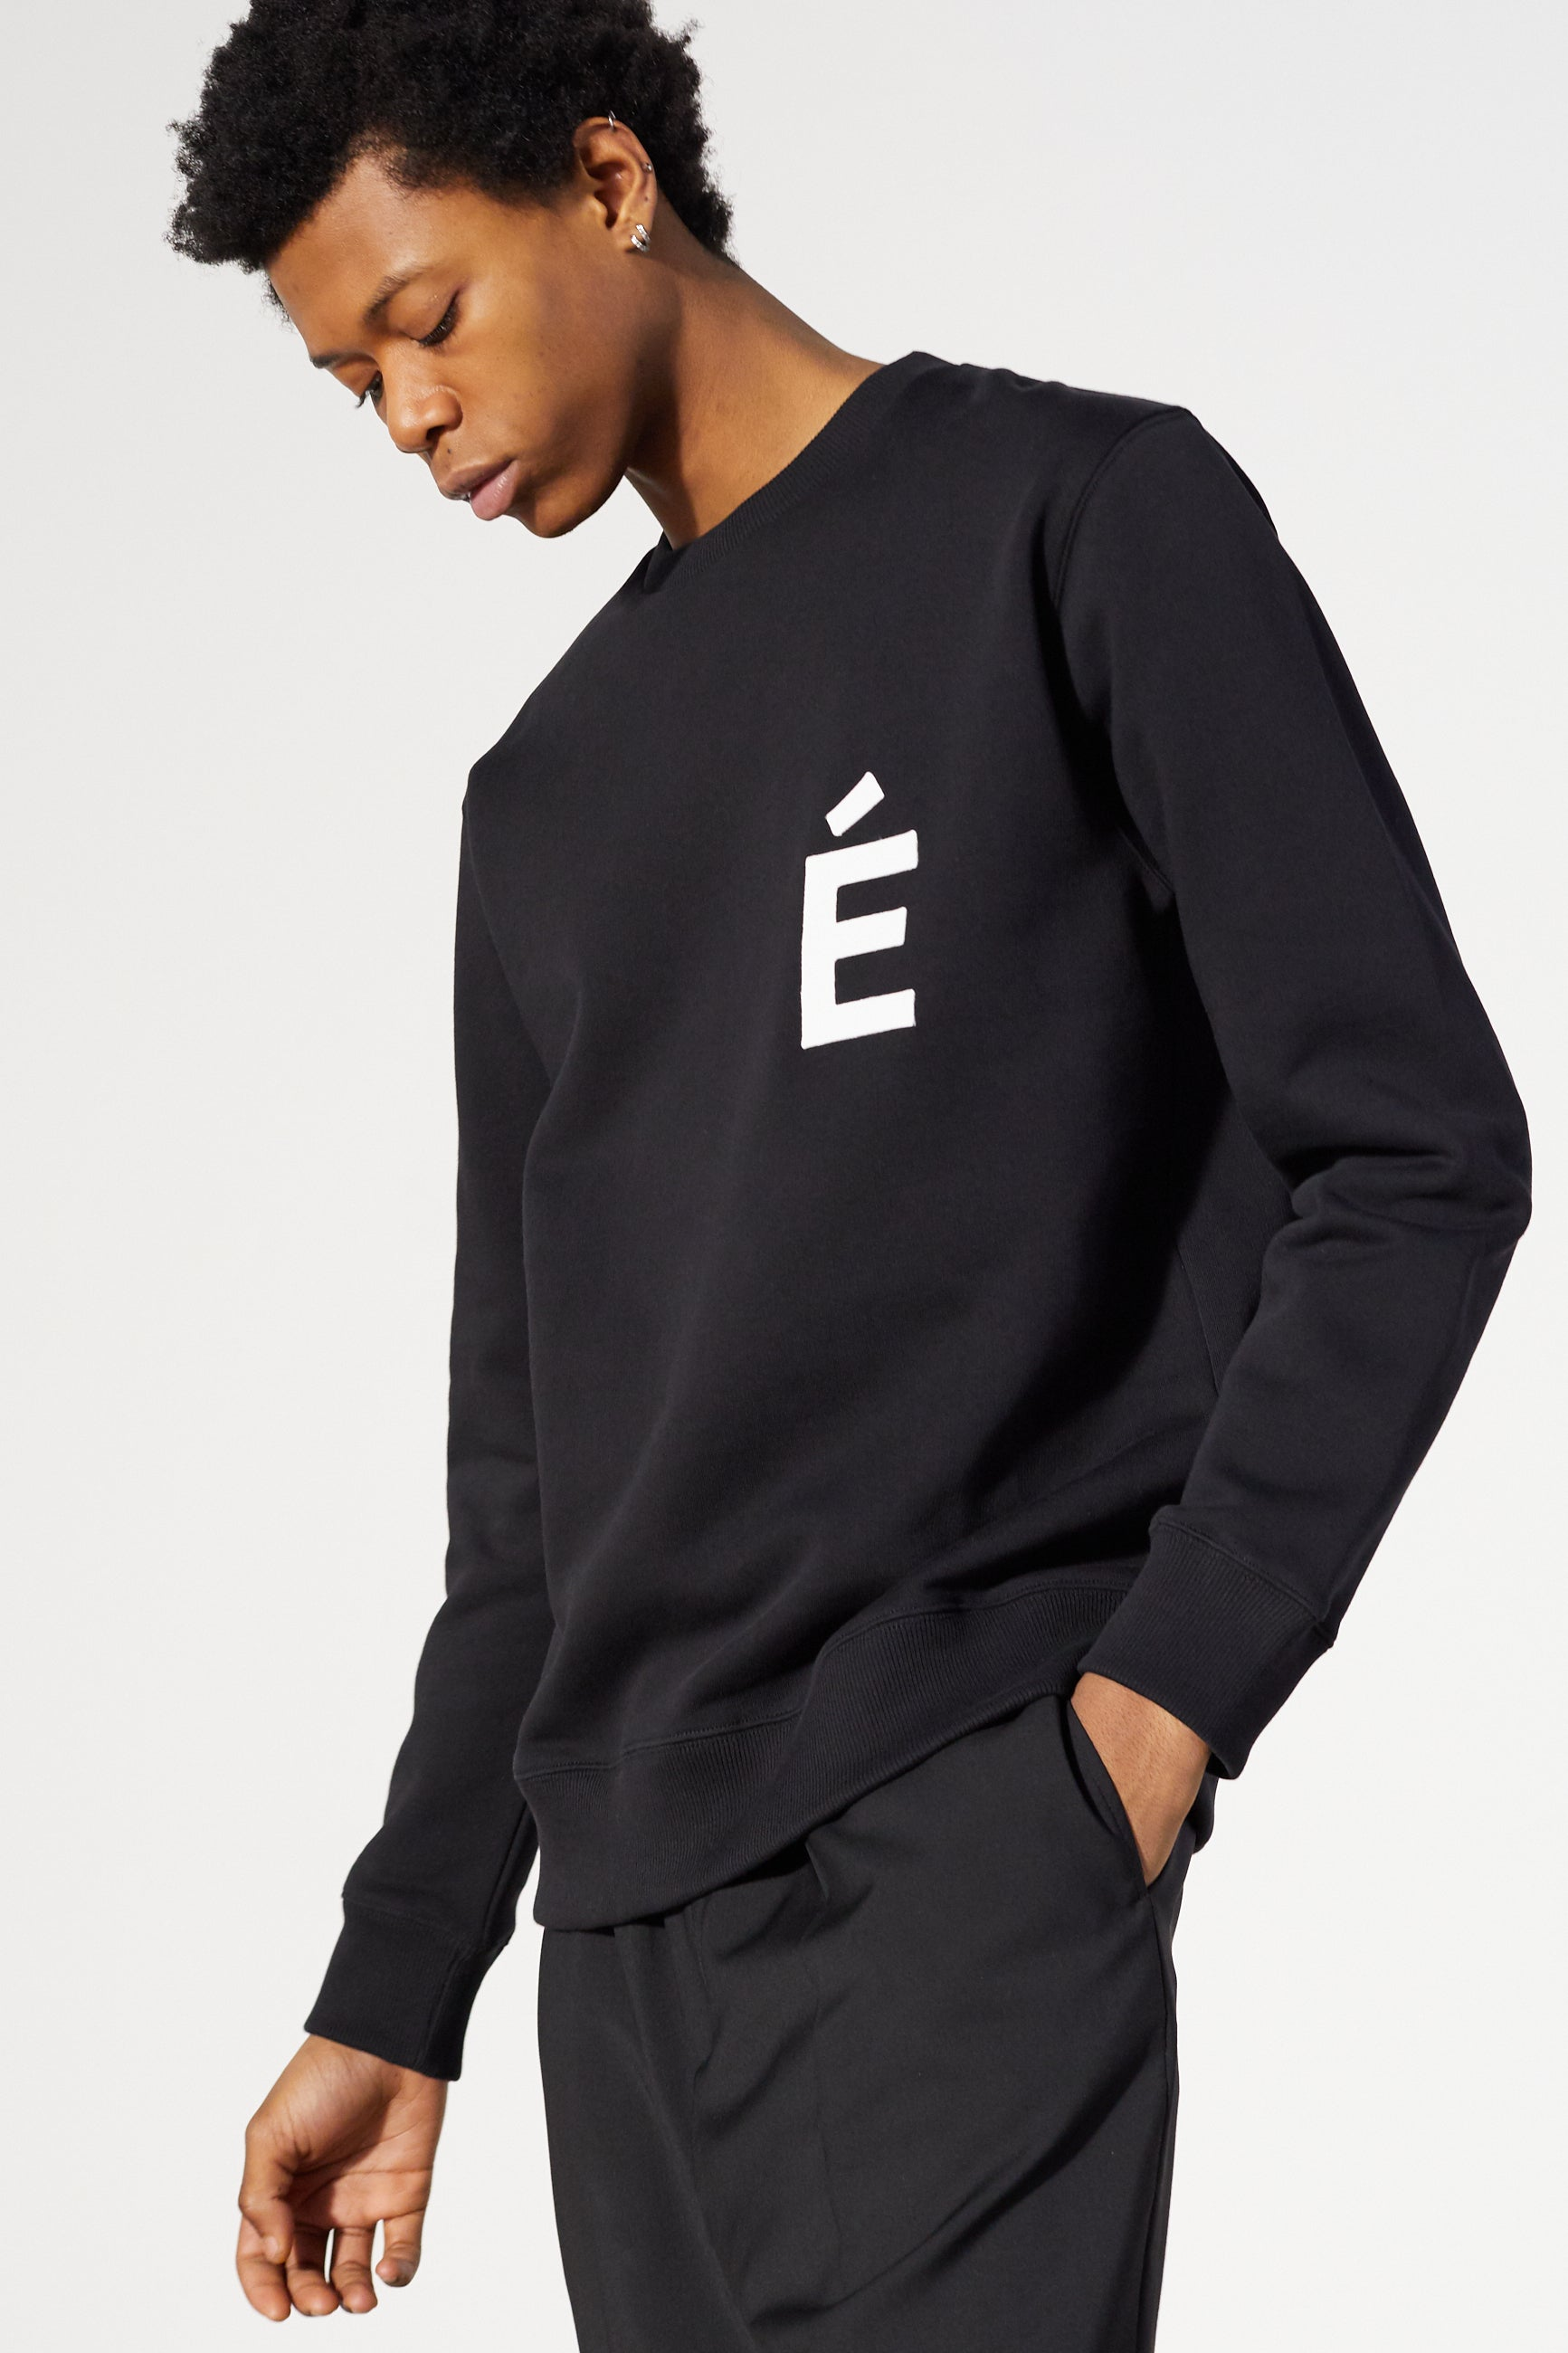 Études Story Patch Black Sweatshirt 4